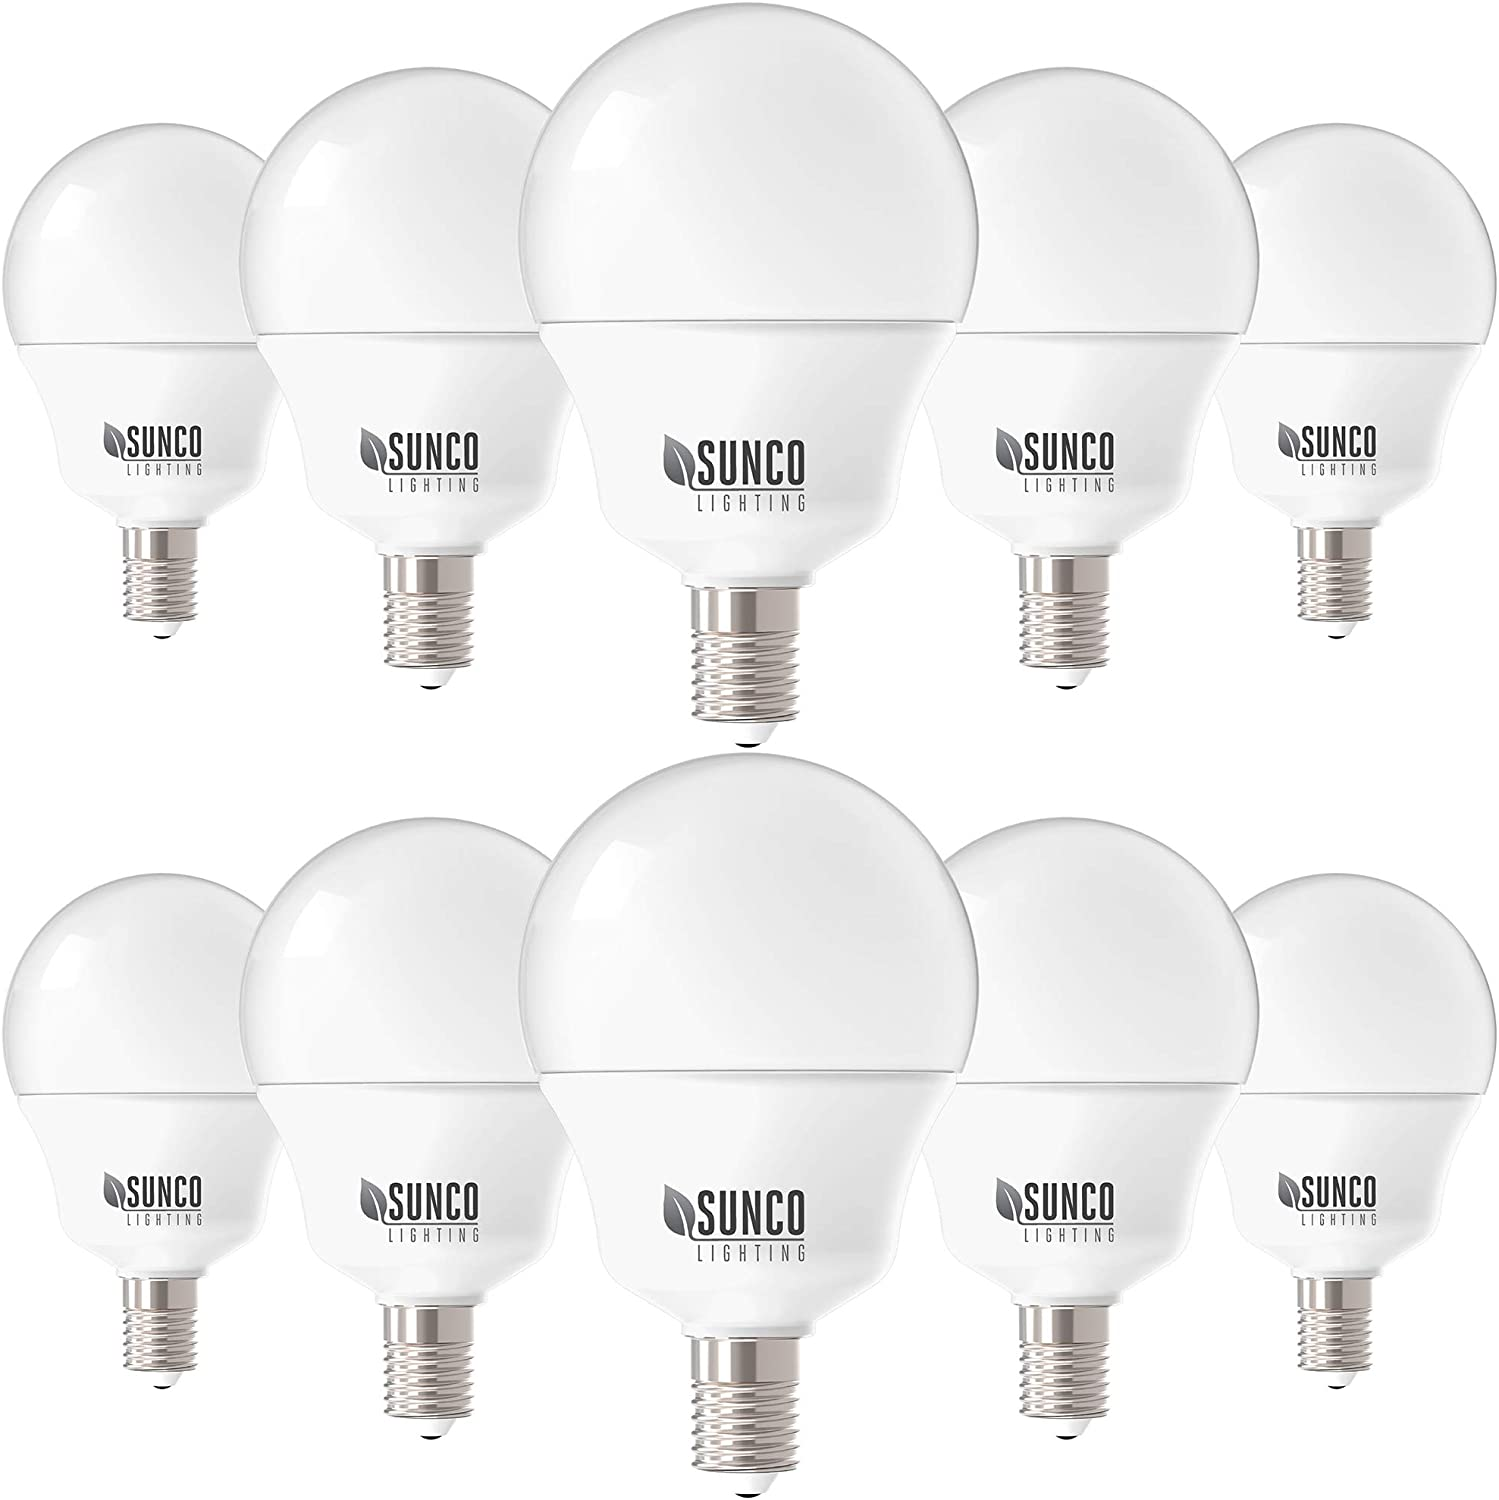 KIT 10 LAMPS LIGHT BULBS LED BULB G45 E14 7W = 50W GT-LUX HOT NATURAL COLD